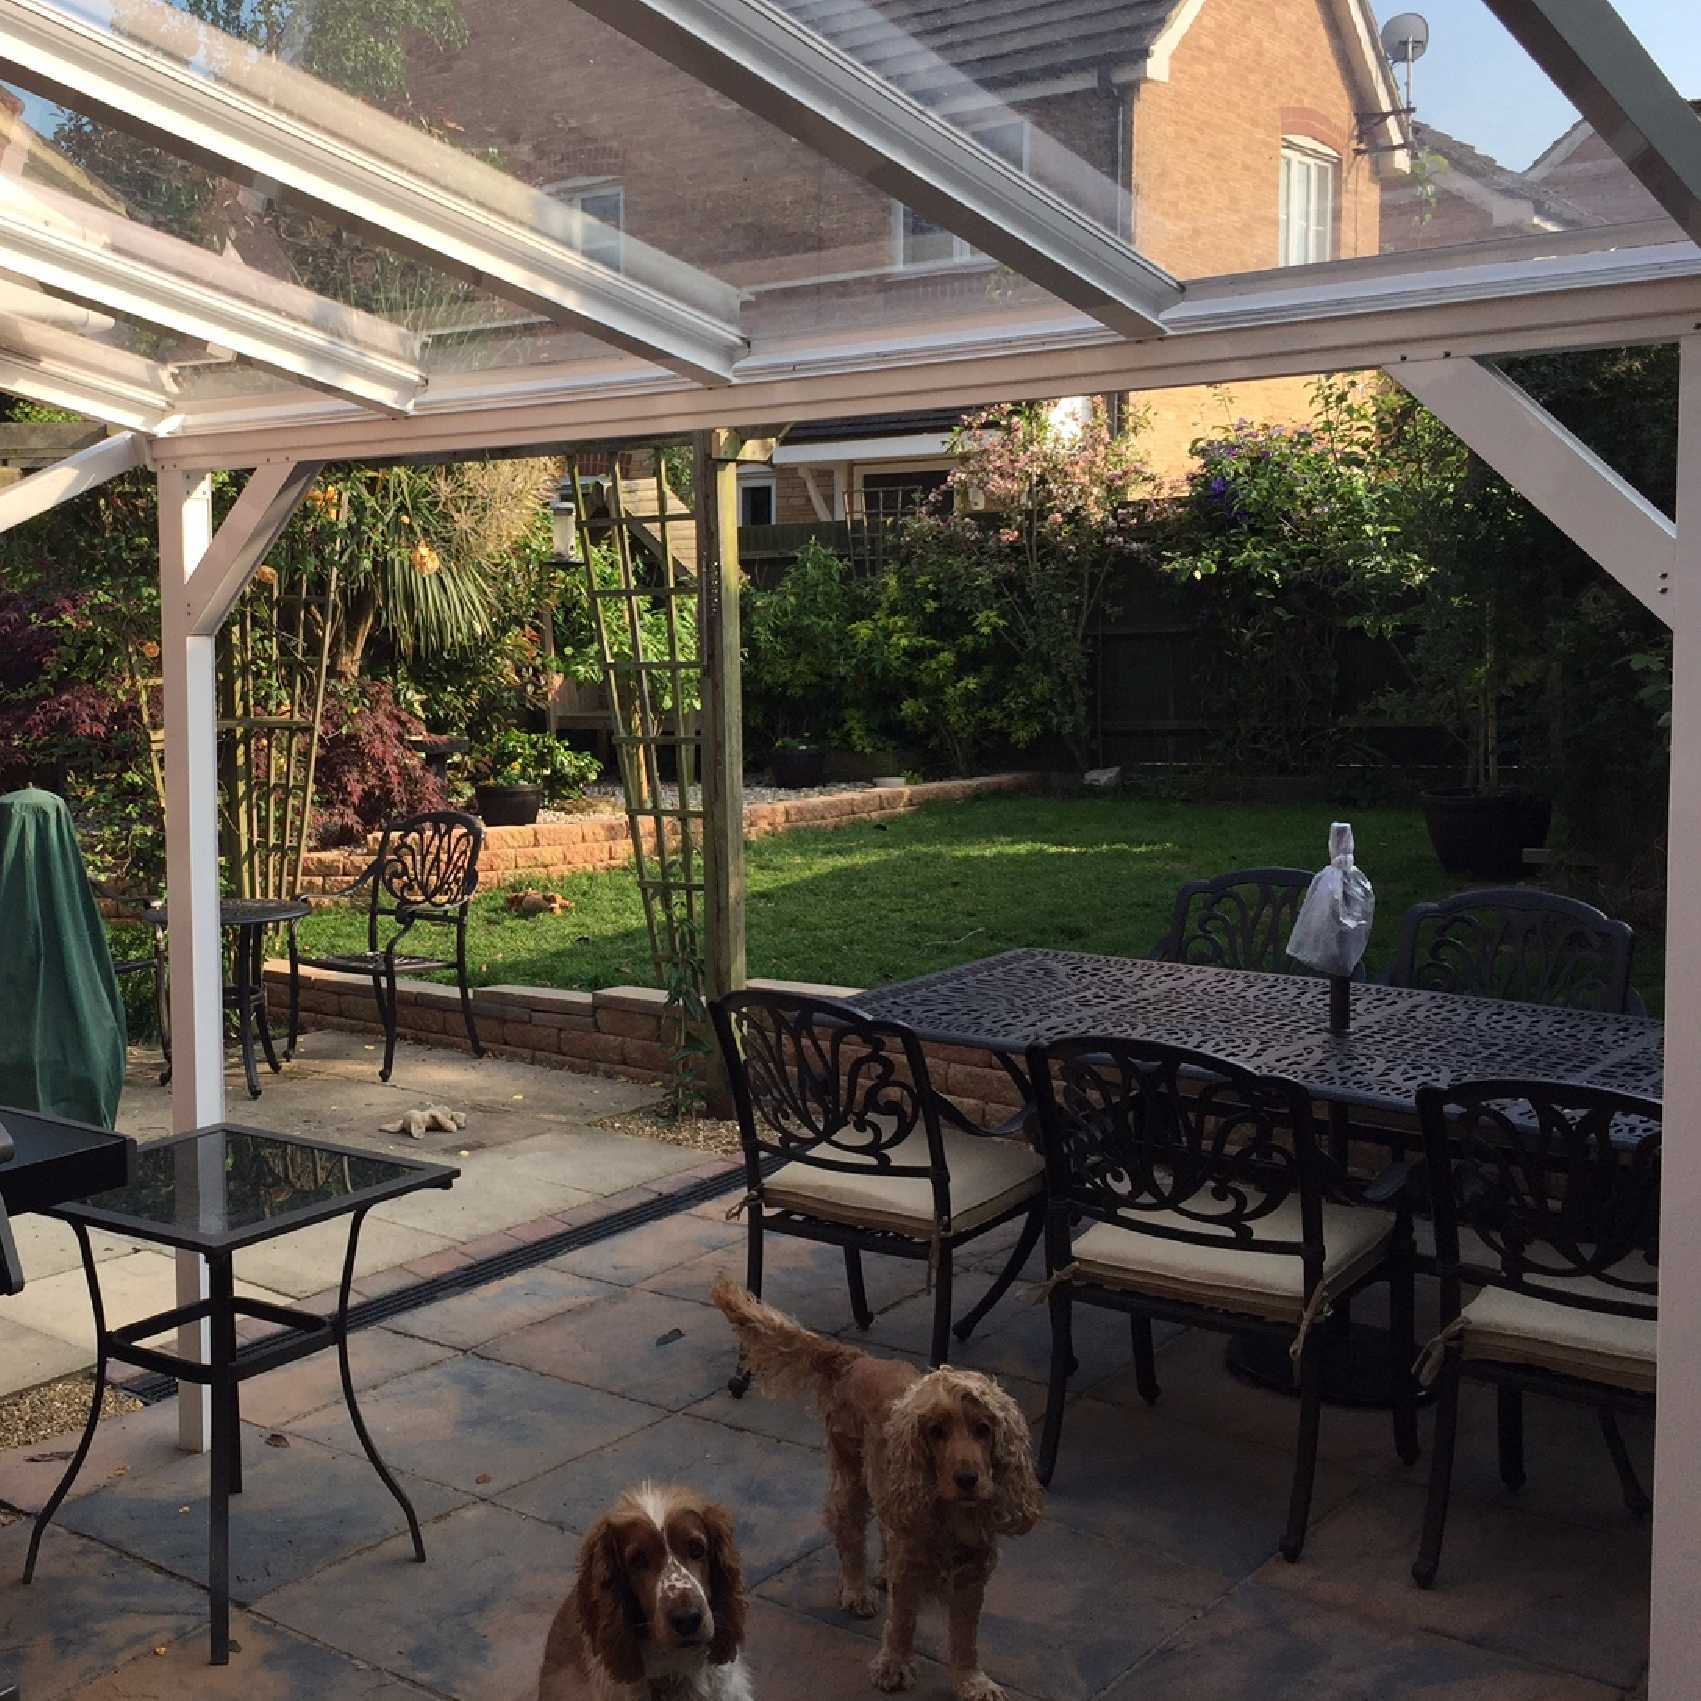 Affordable Omega Smart Lean-To Canopy with 6mm Glass Clear Plate Polycarbonate Glazing - 7.7m (W) x 1.5m (P), (4) Supporting Posts